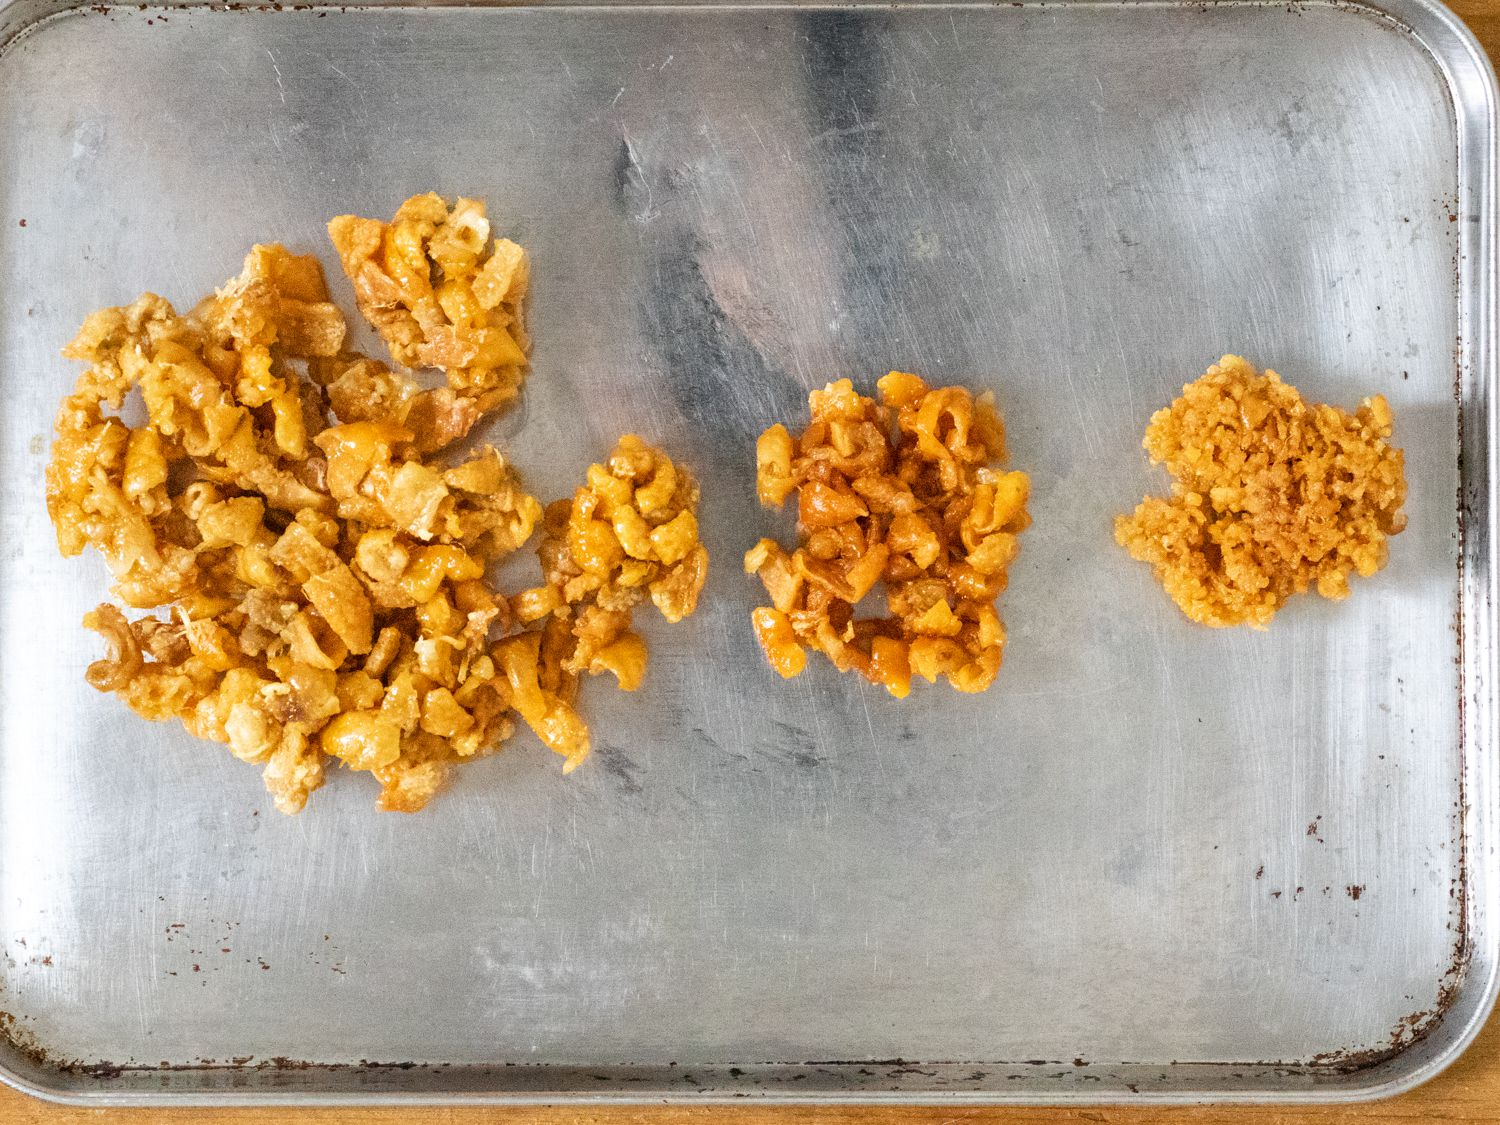 Three different chicken skin chips, produced by cutting the skin up in different ways and microwaving it.